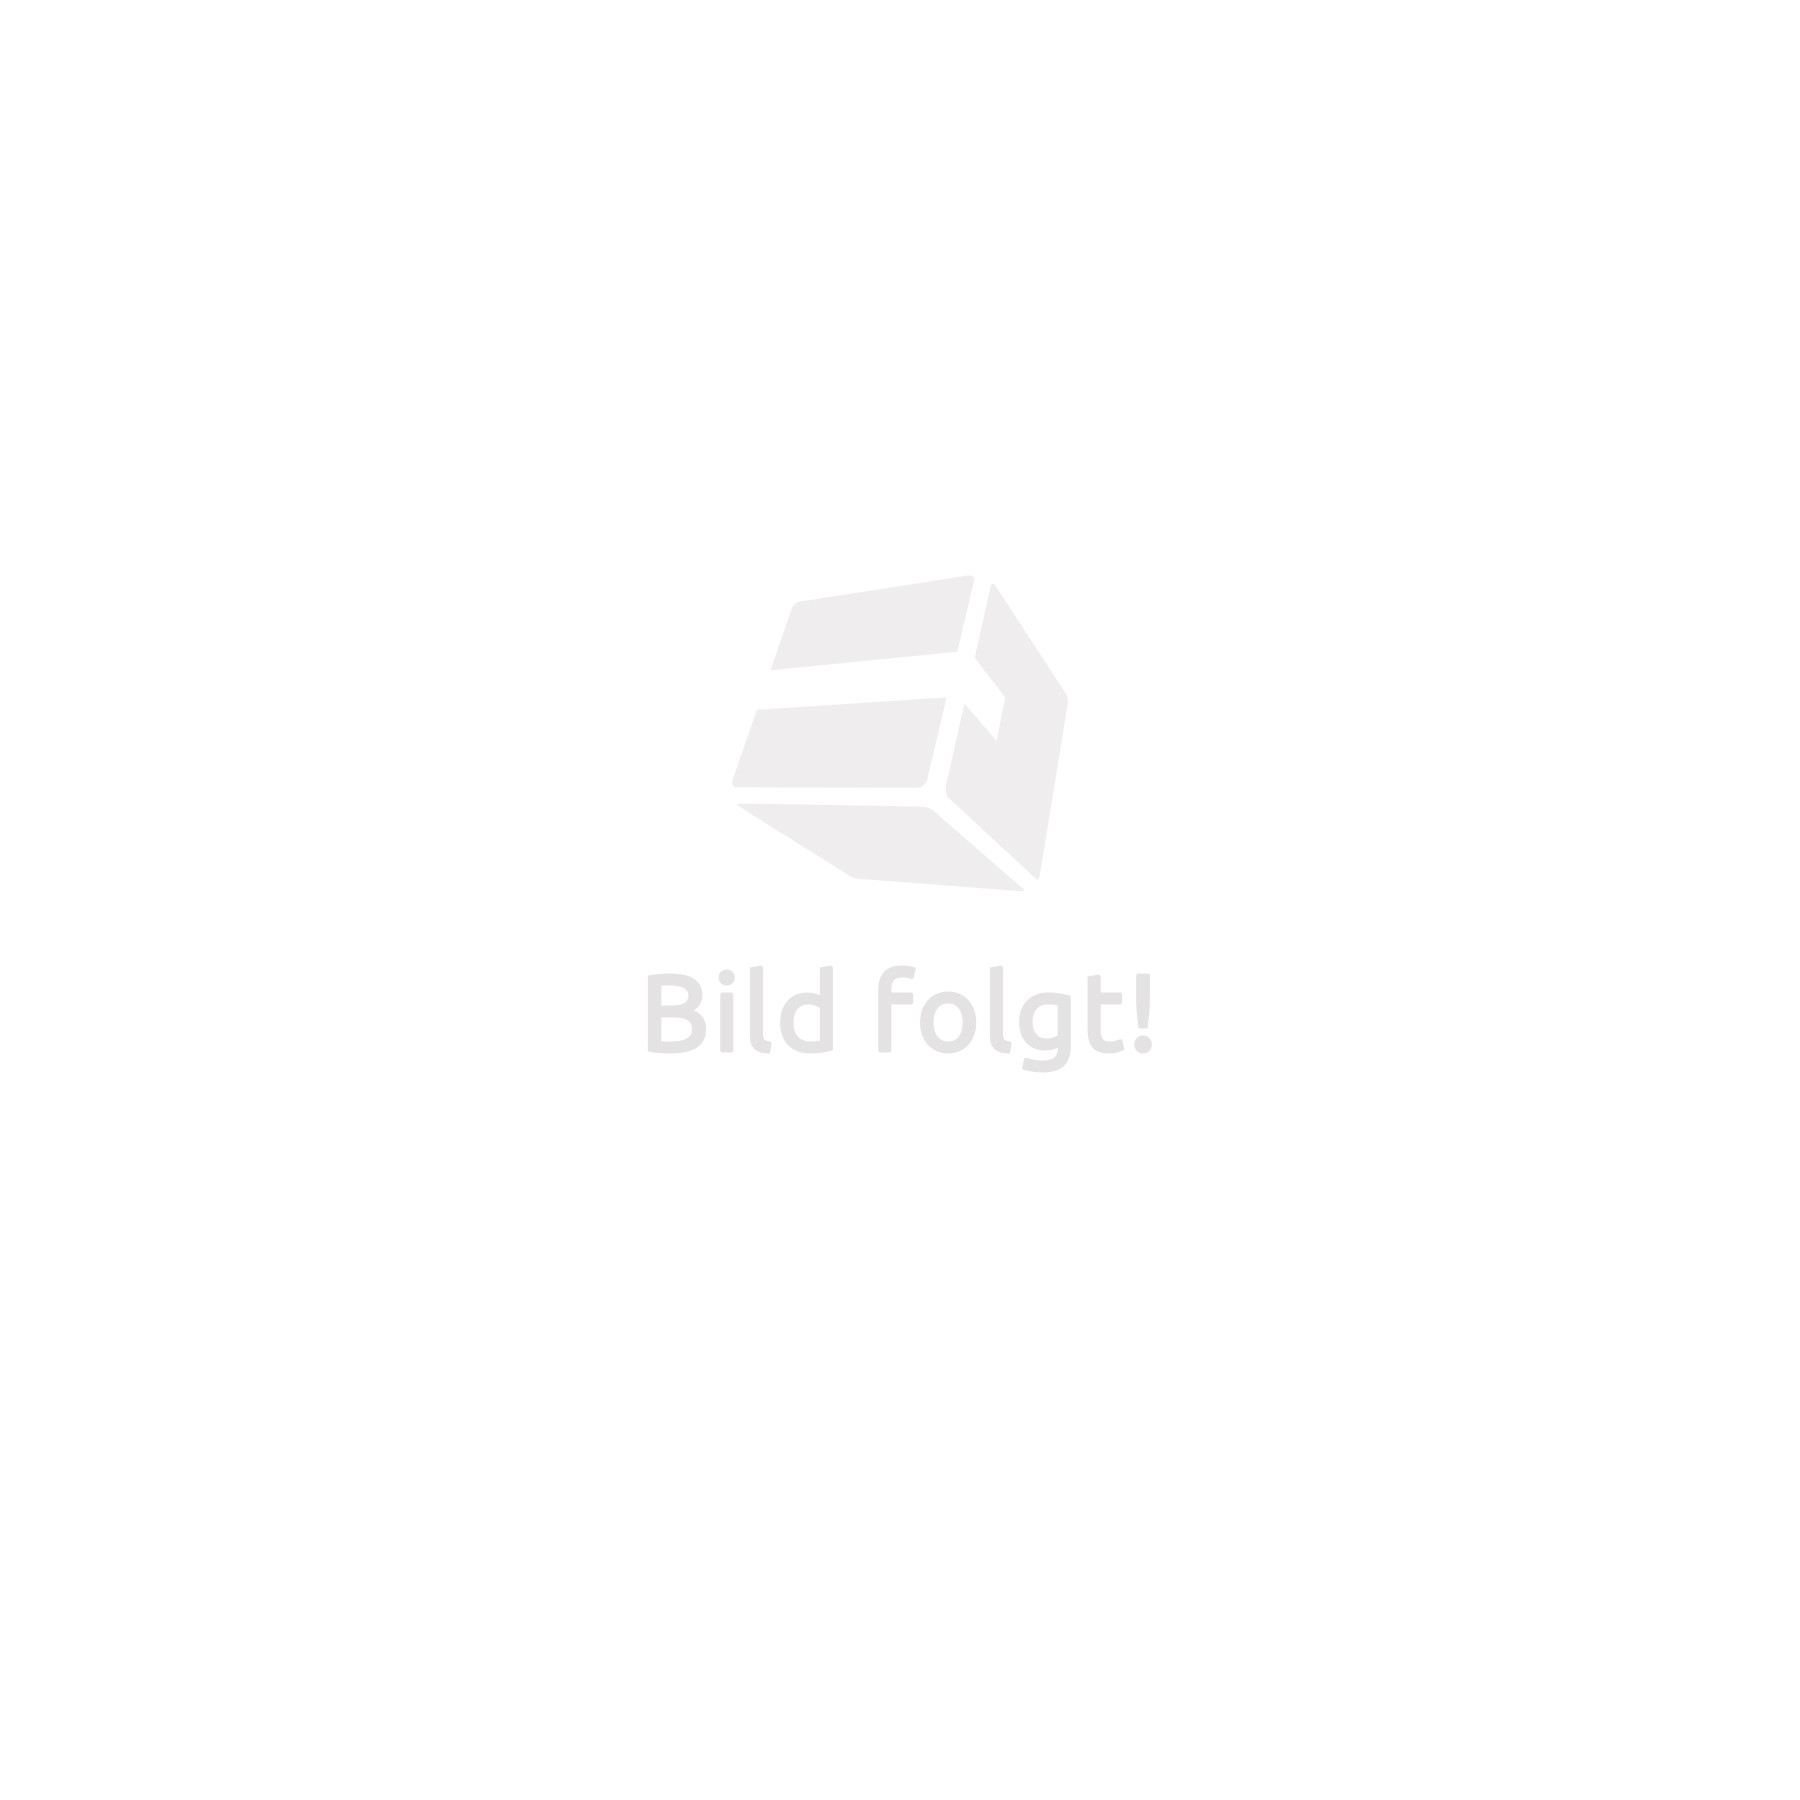 TV wall mount for 23-55 inch (58-140cm) fixed